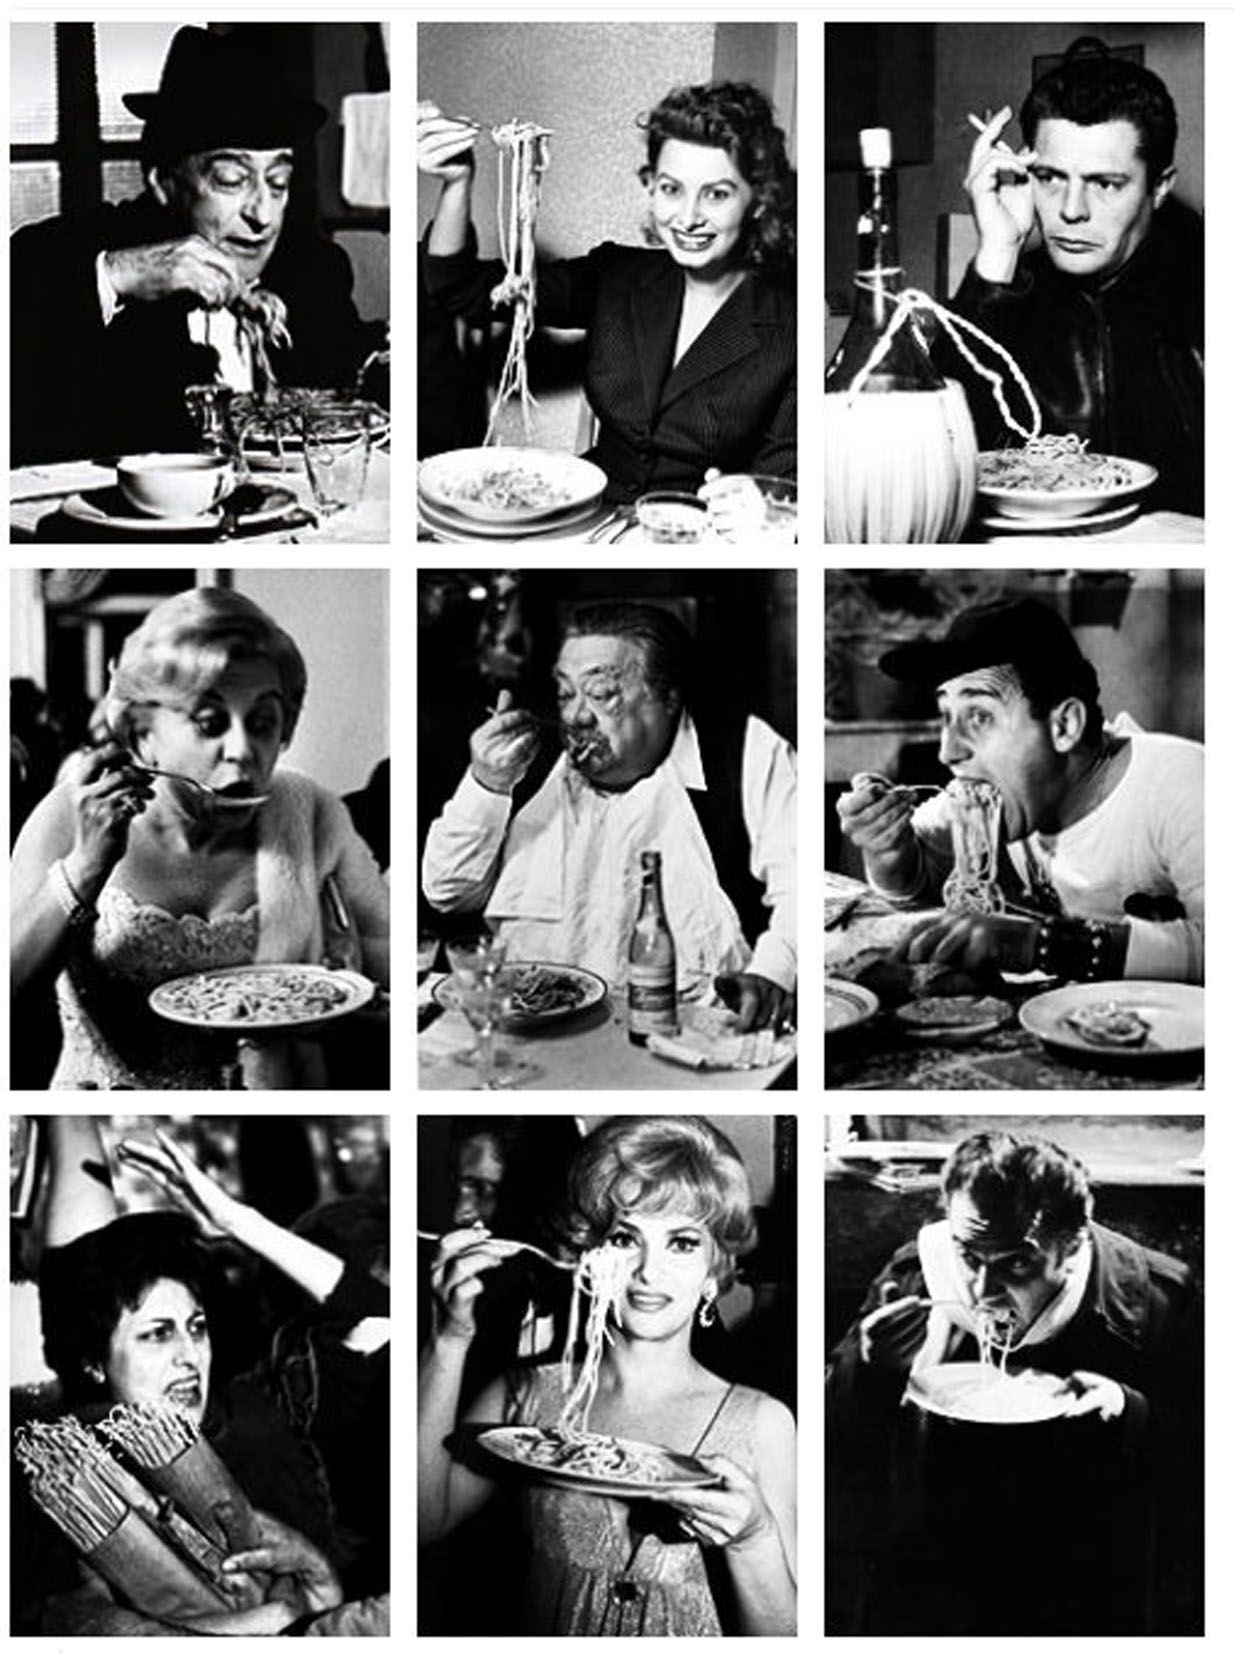 TEASER PHOTO GRID FROM SHOOT Italian actors eating pasta | Pasta italiana, Italian culture, Cinema